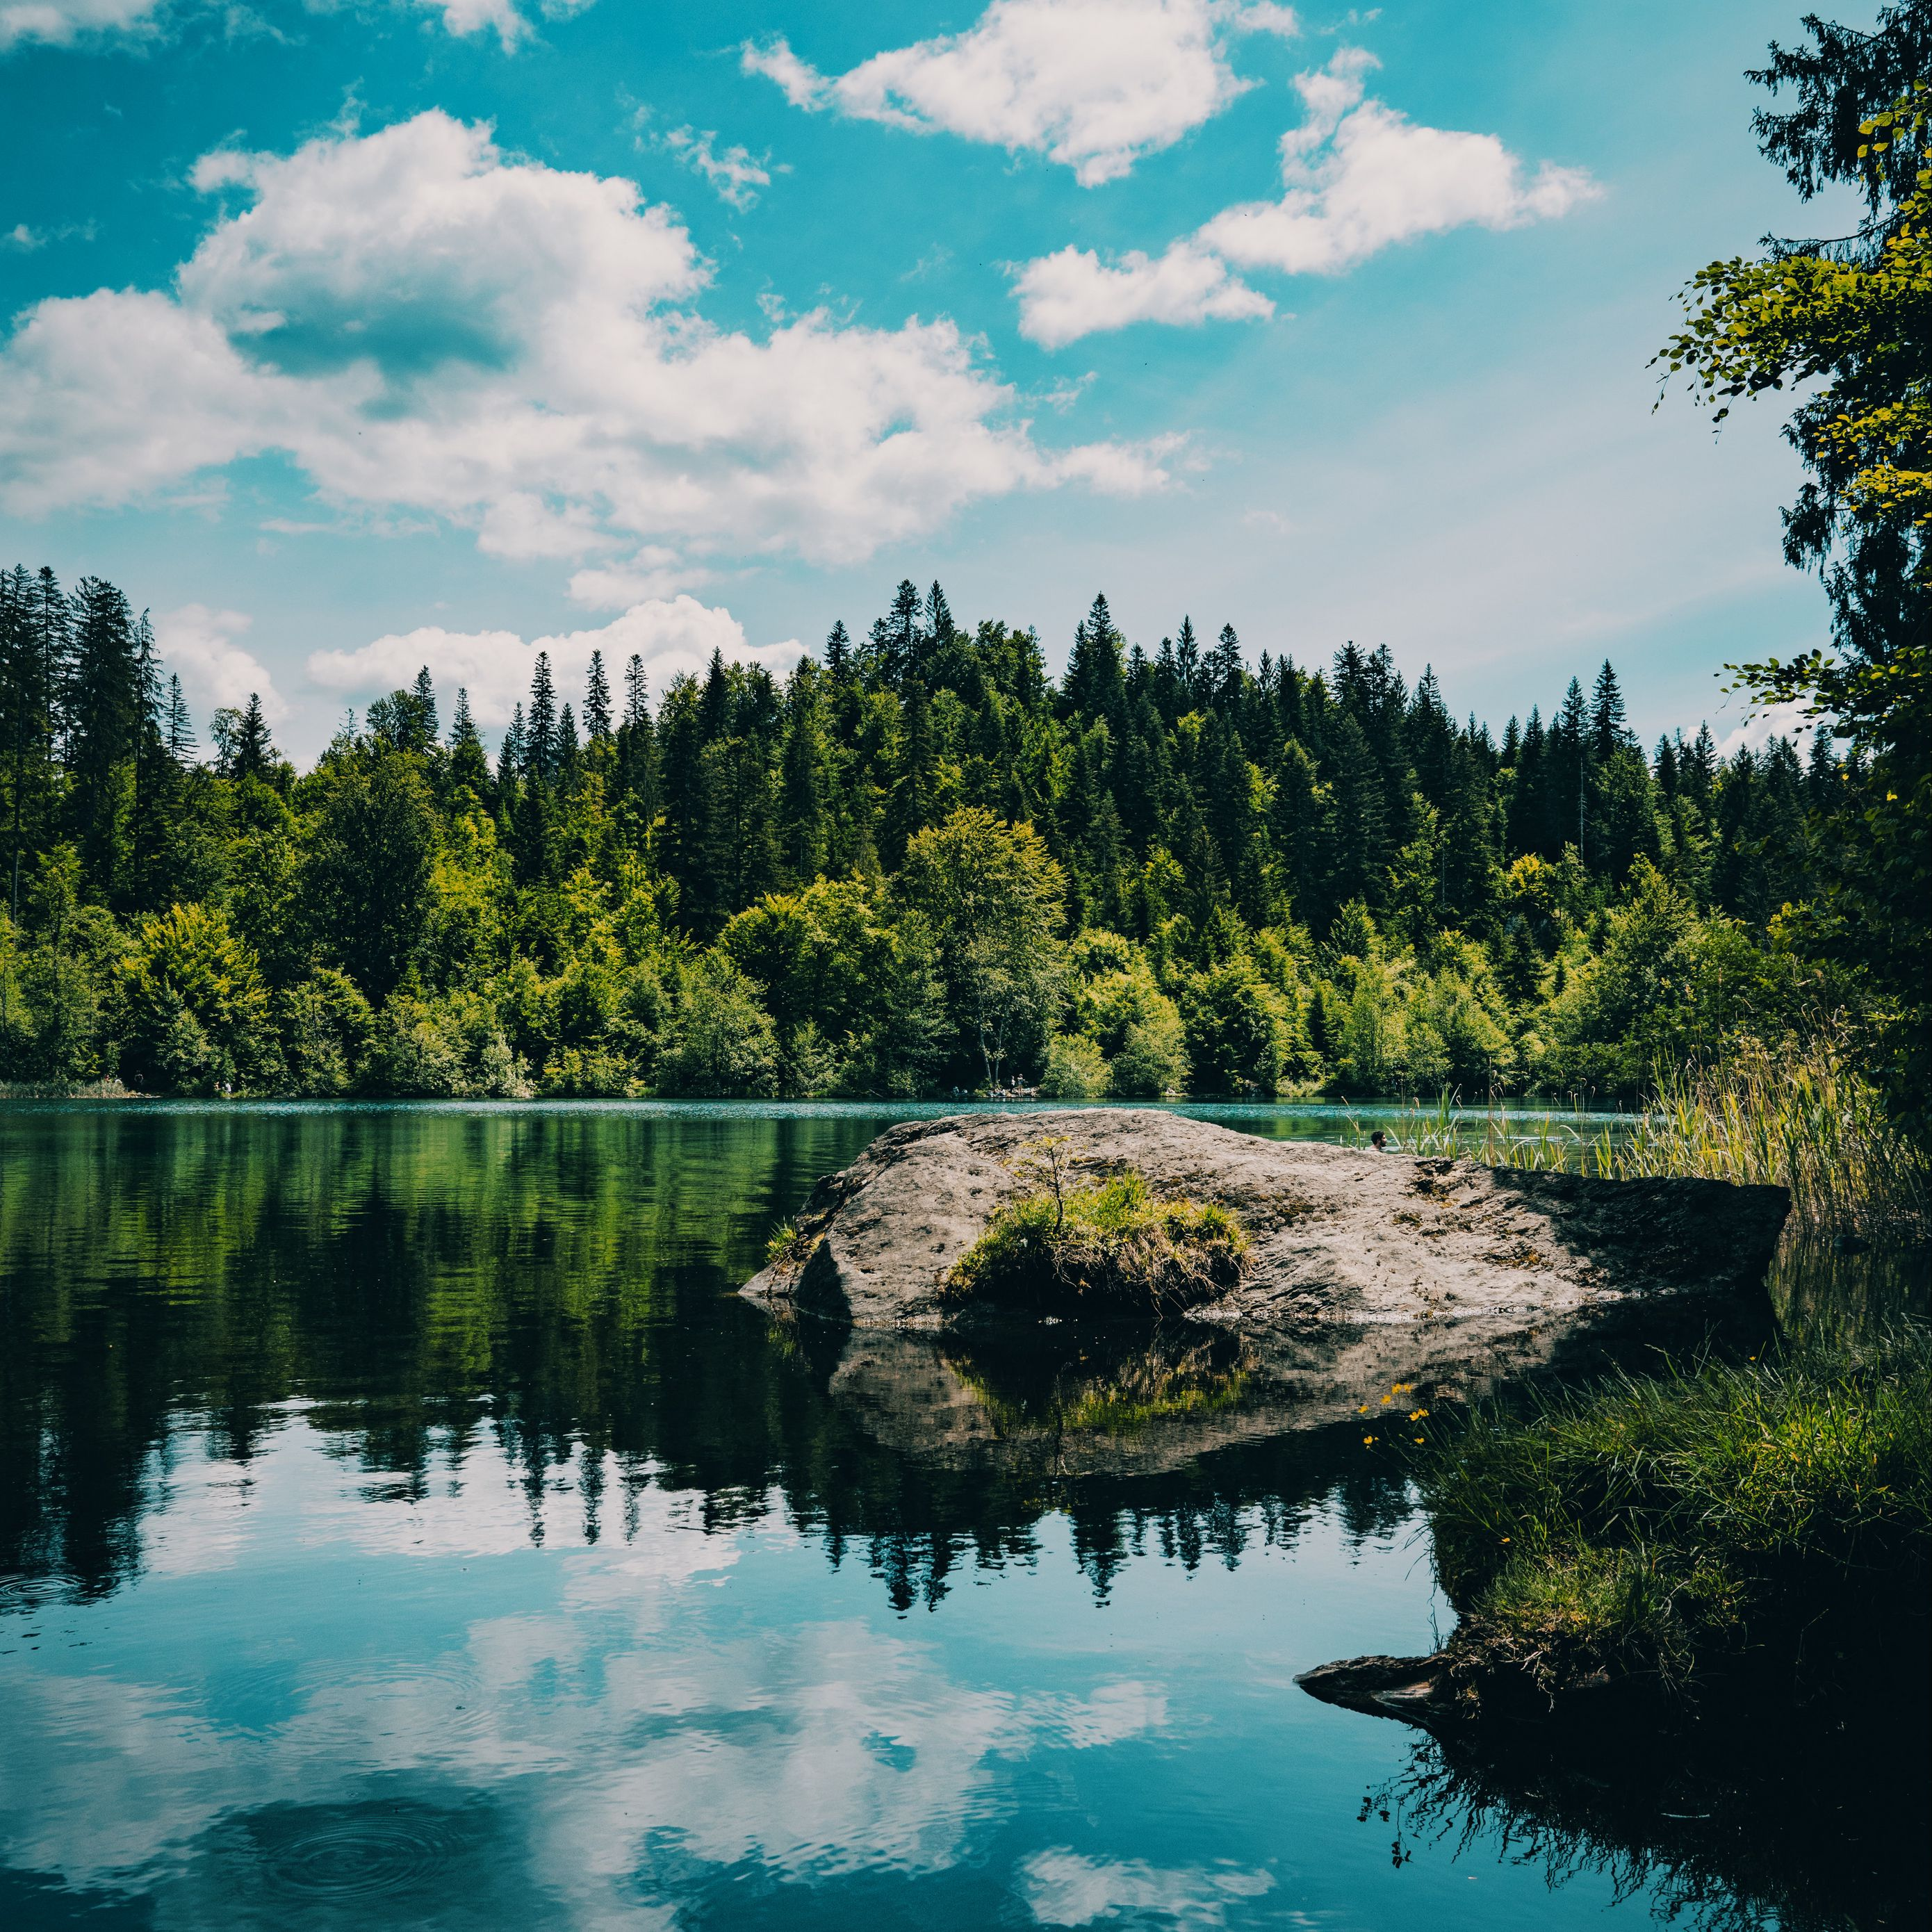 2780x2780 Wallpaper river, forest, trees, stone, grass